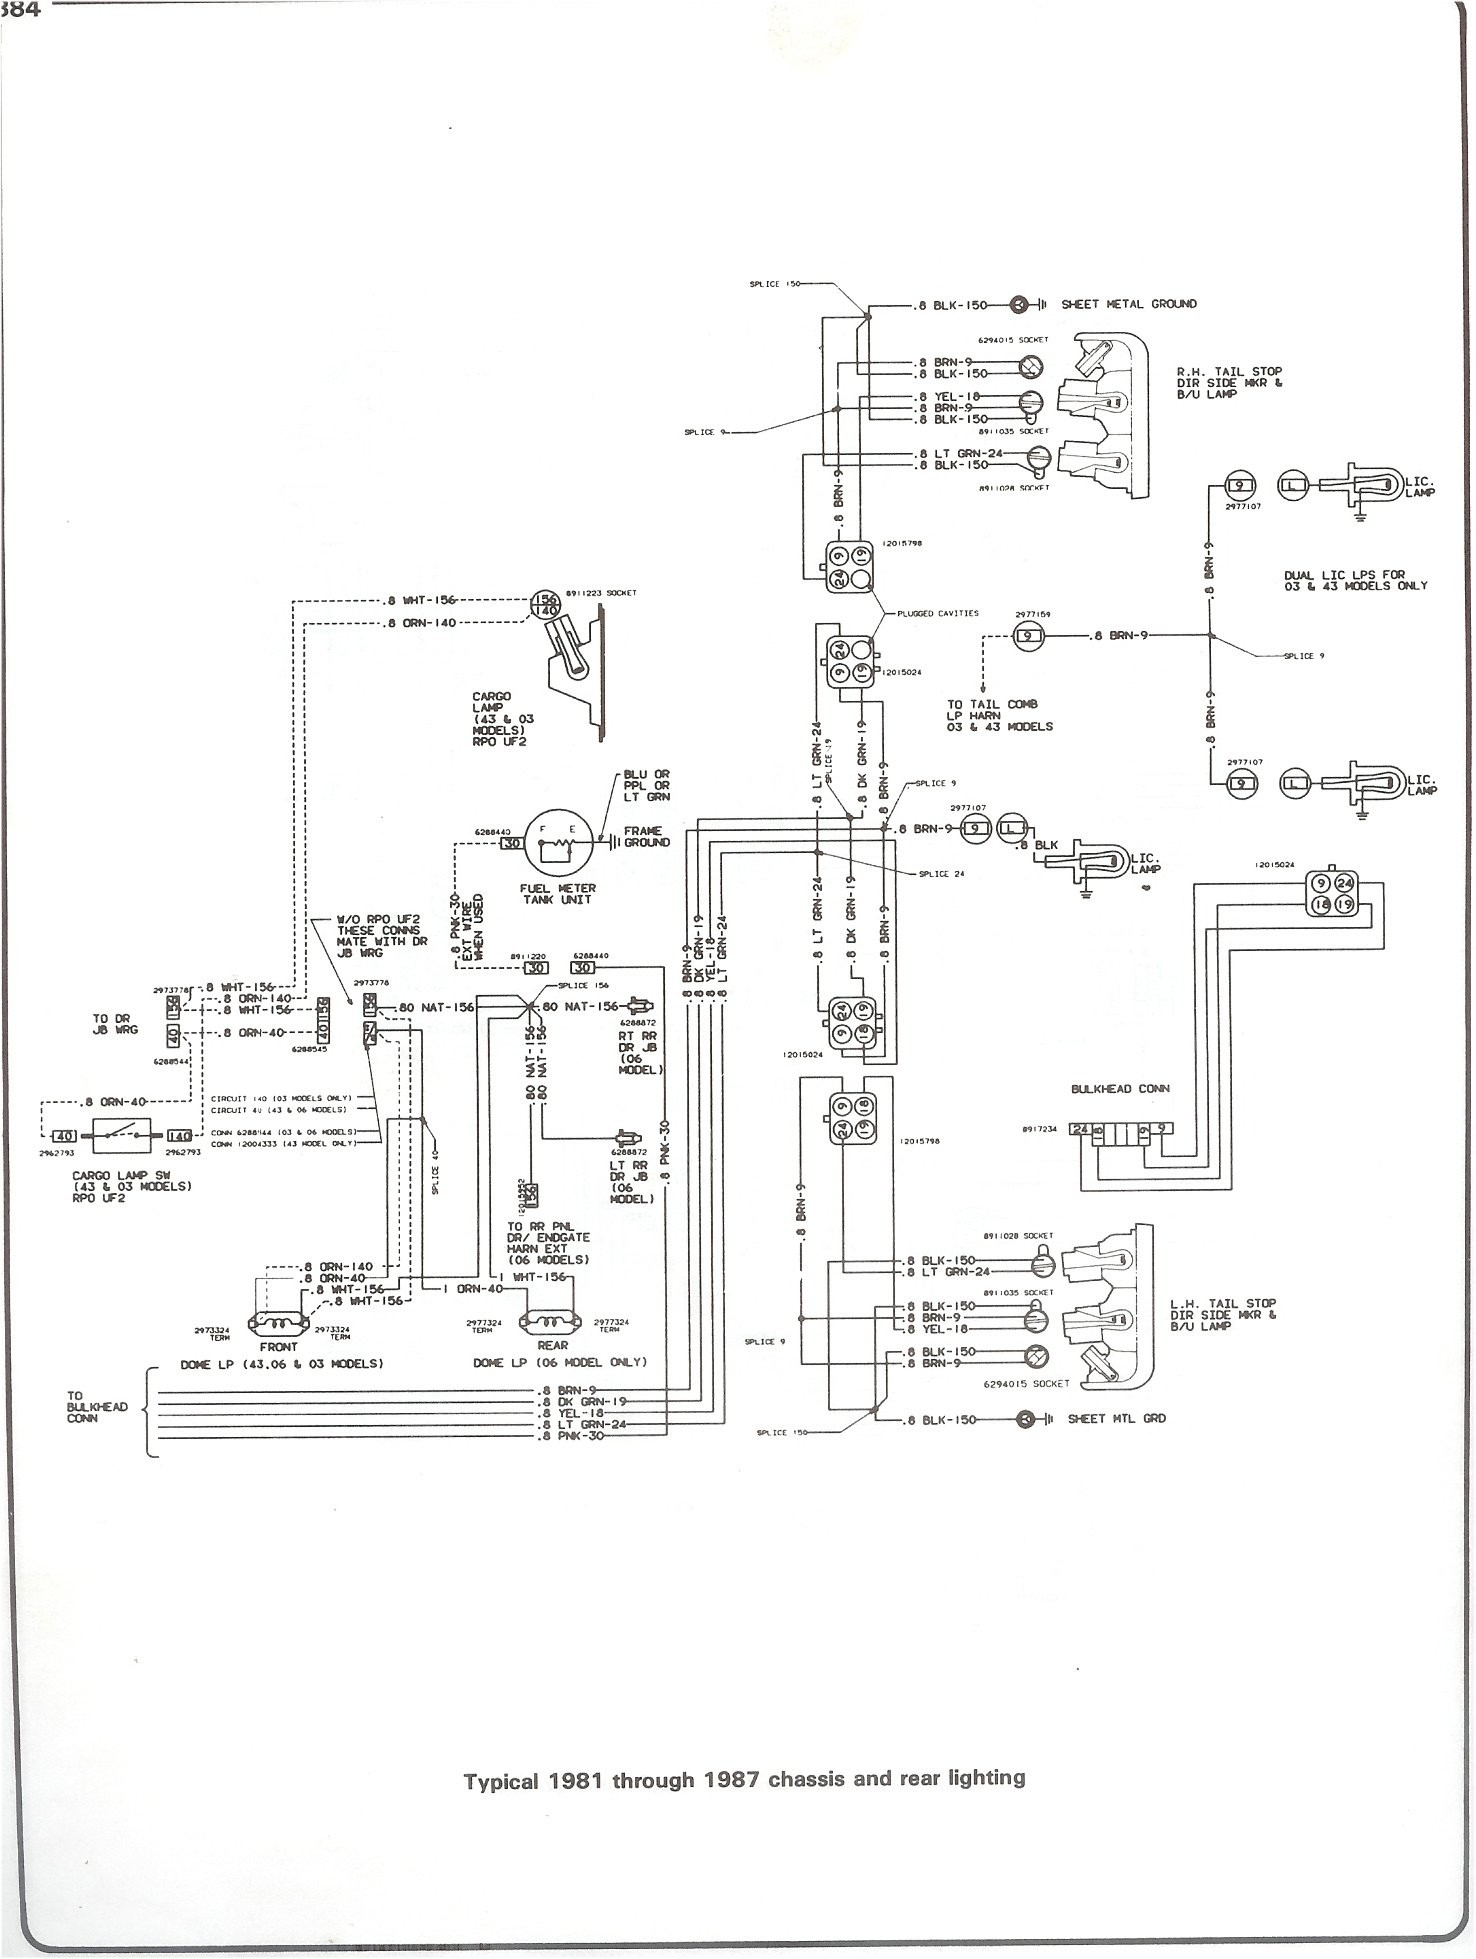 Diagram 1965 Chevy C10 Pickup Truck Fuse Box Diagram Wiring Full Version Hd Quality Diagram Wiring Sitexwyatt Radioueb It